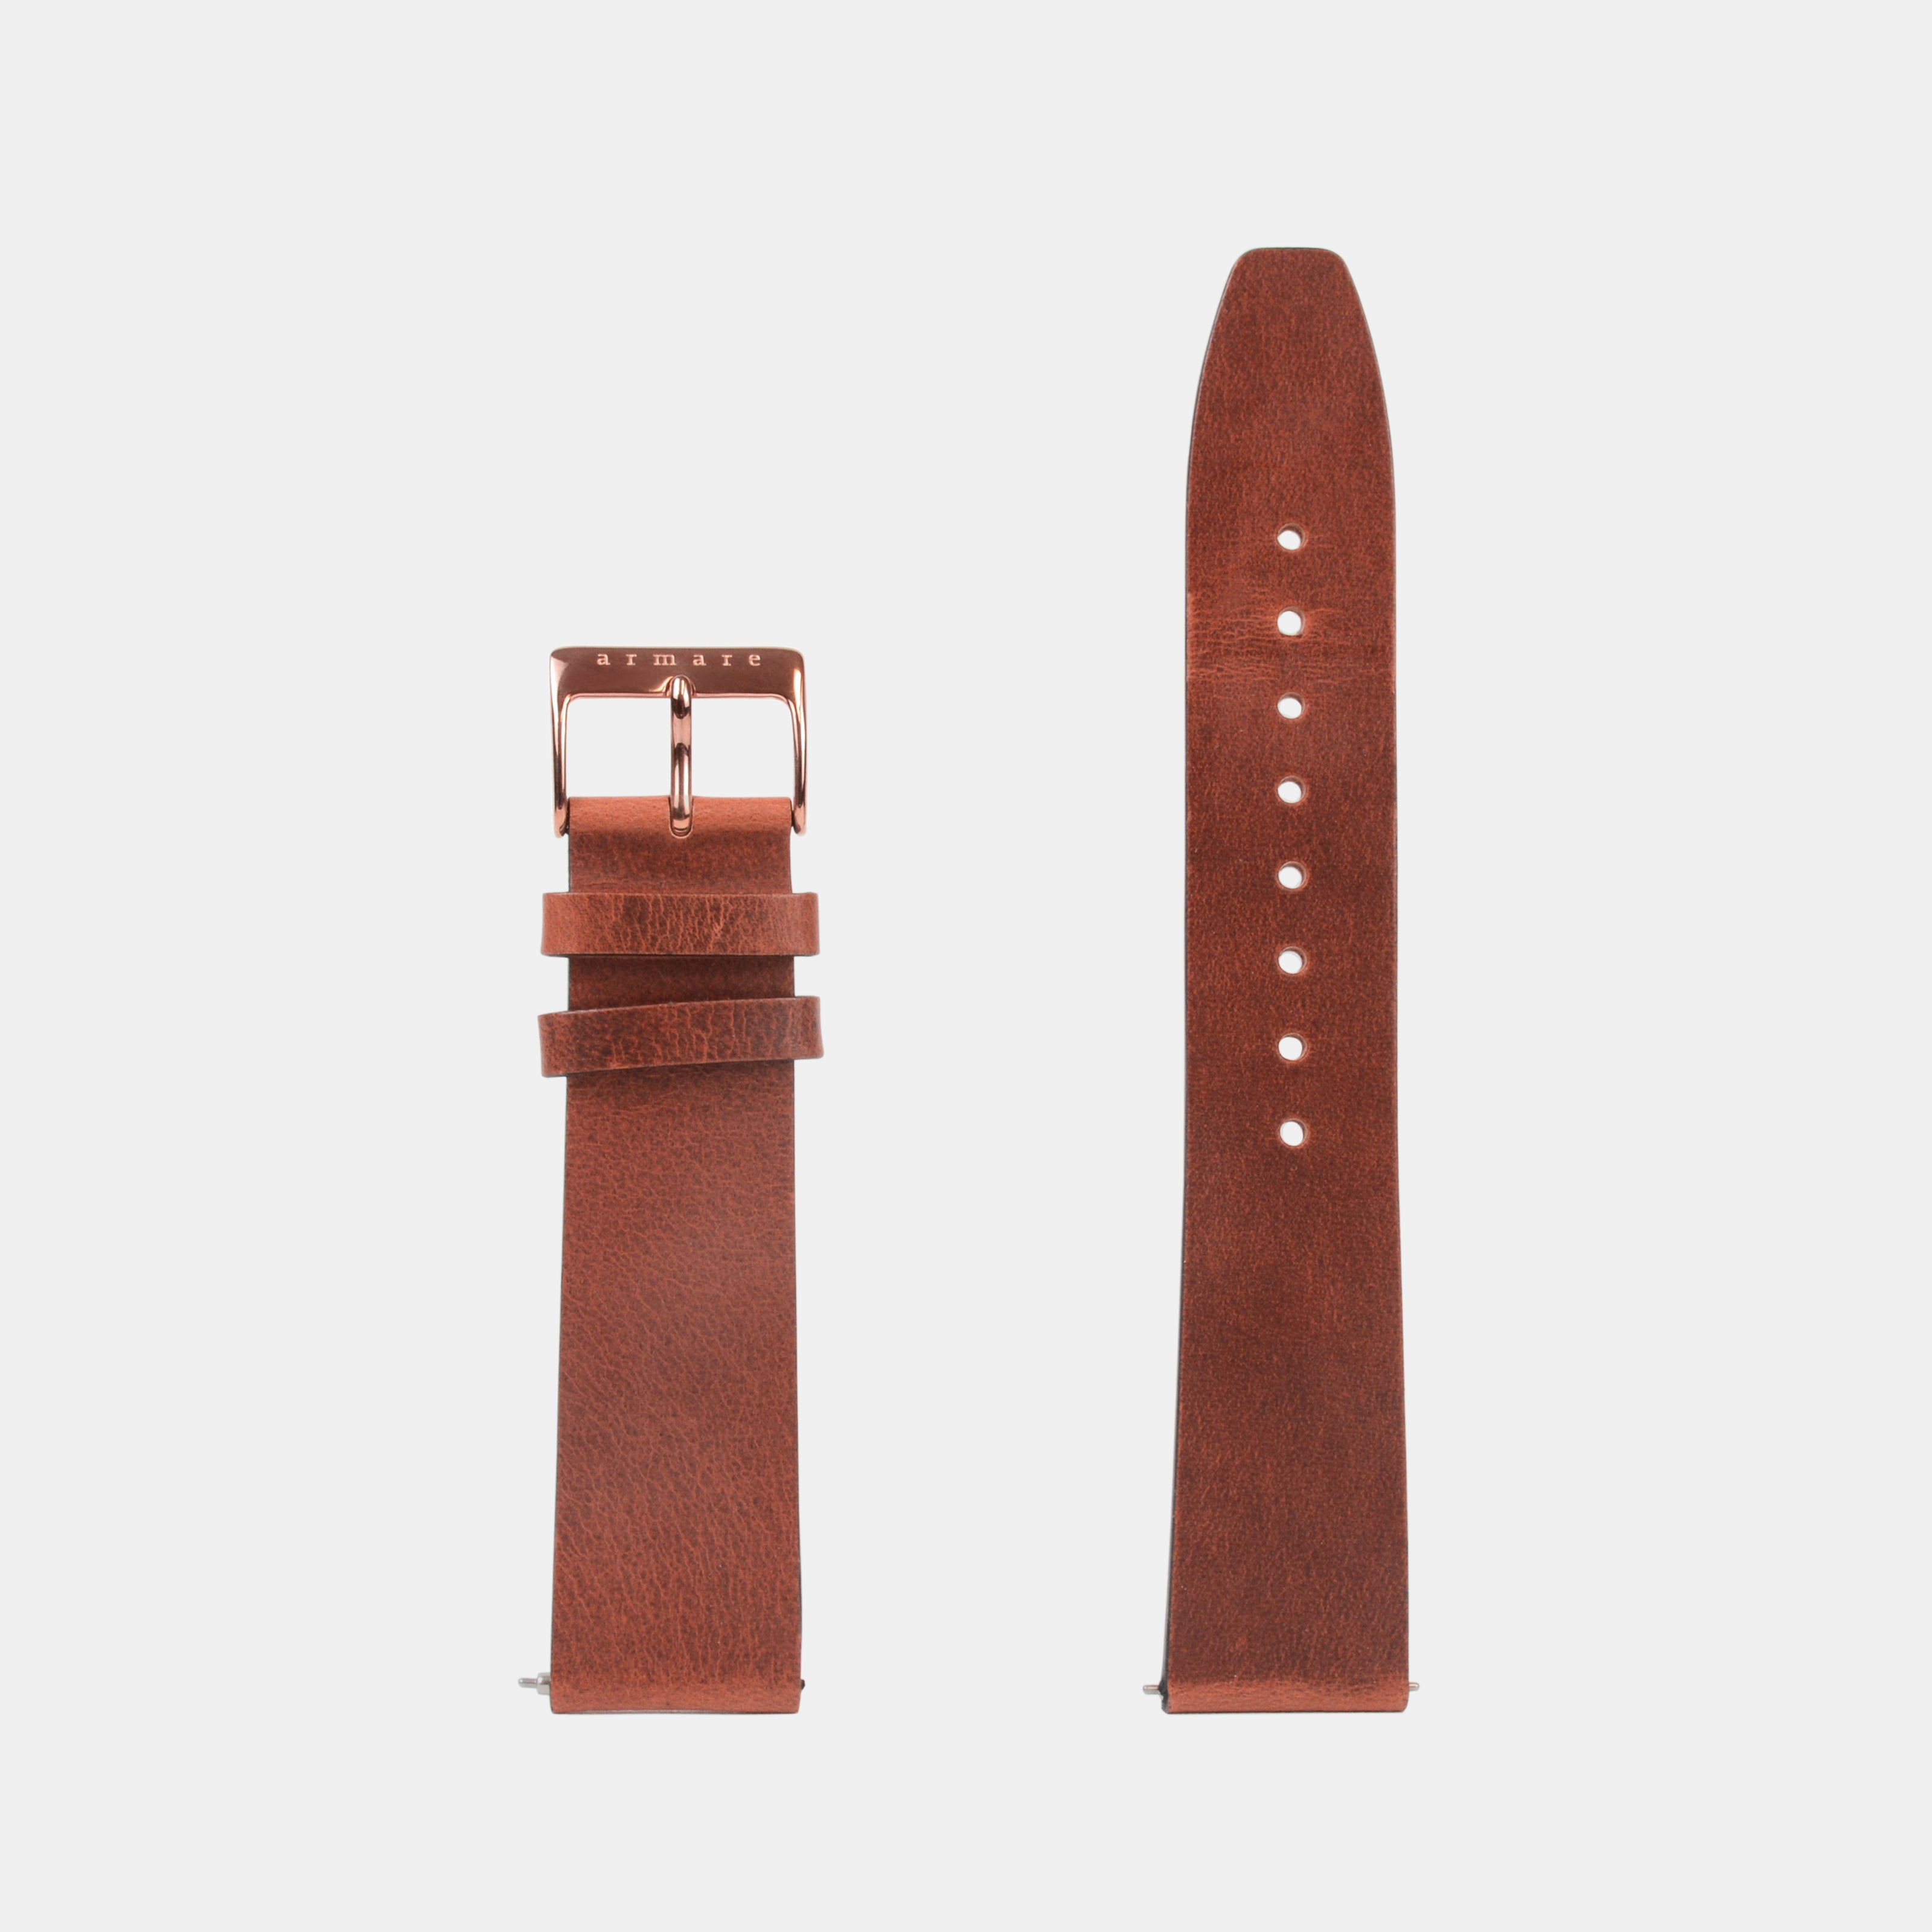 armare-watches-caramel-leather-watchband-rosegold